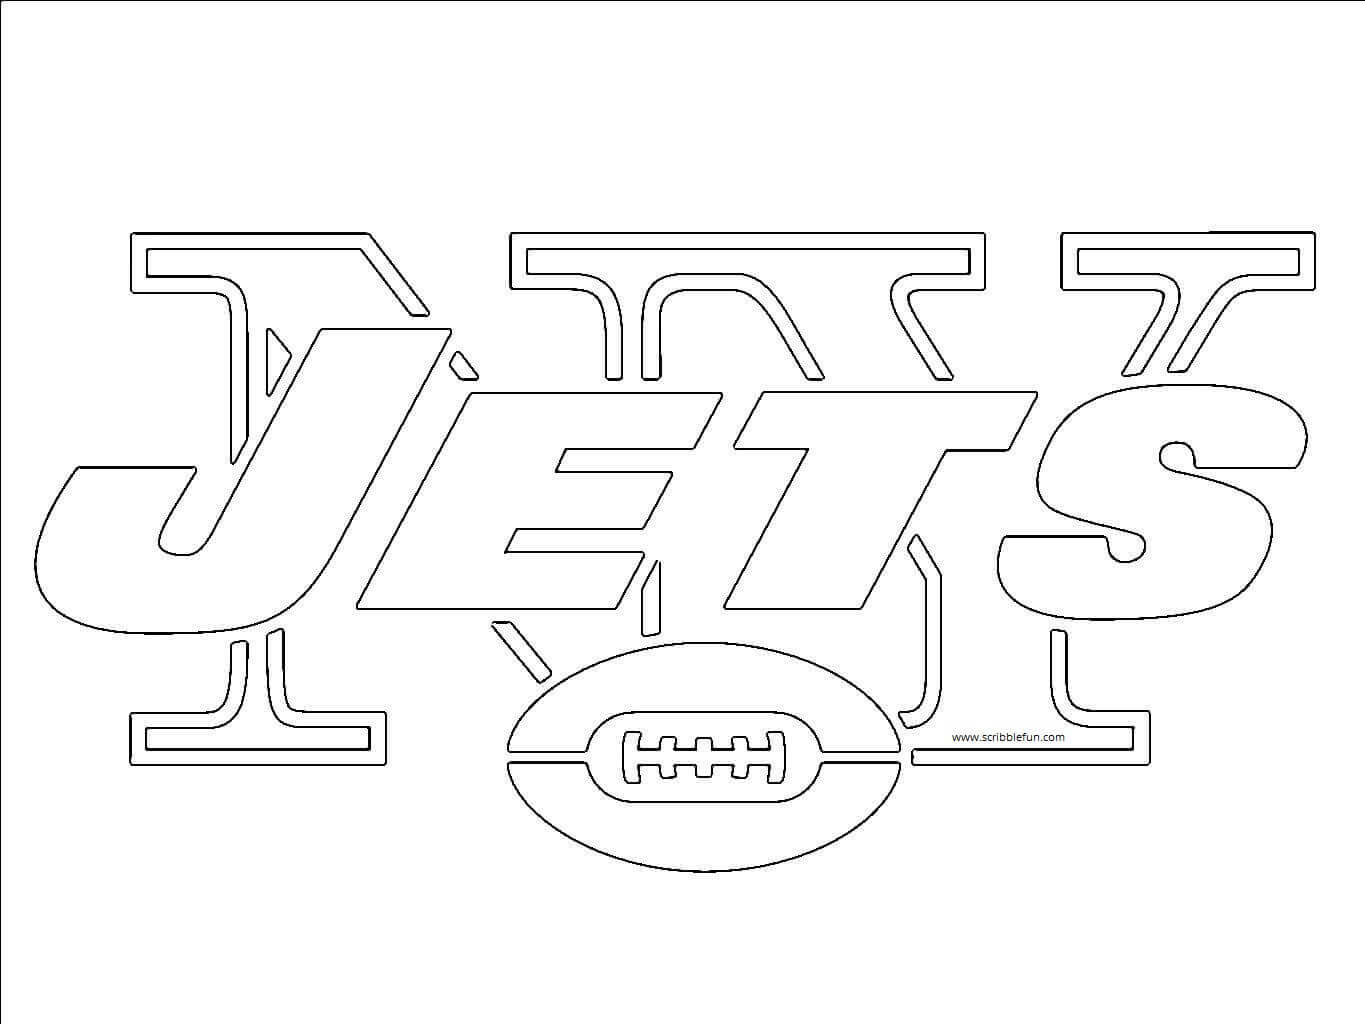 New York Jets NFL Coloring Sheet